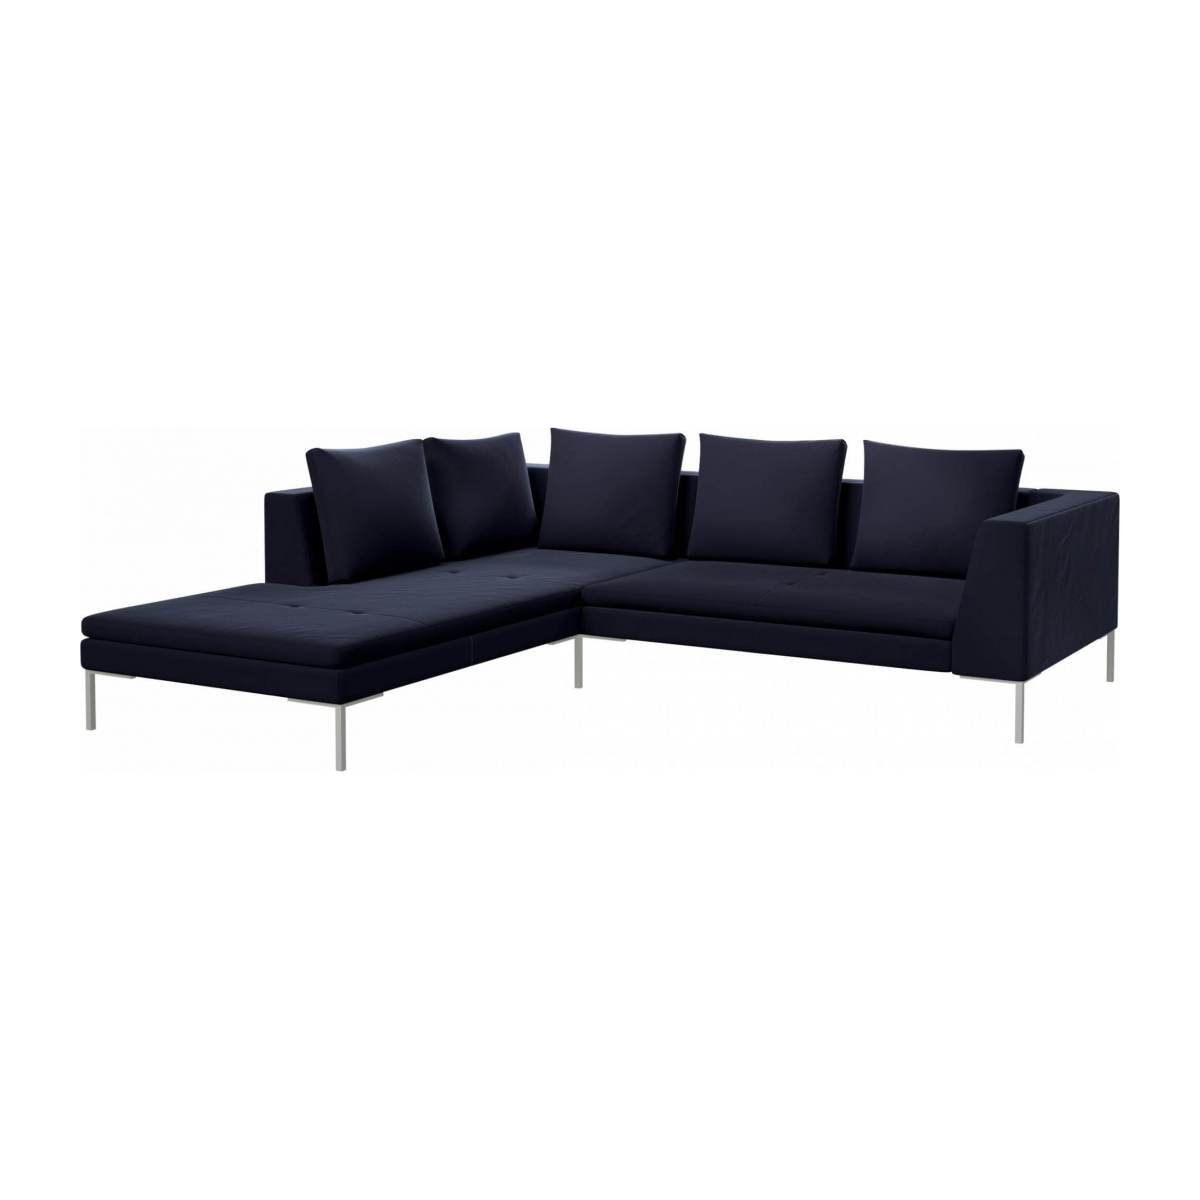 2 seater sofa with chaise longue on the left in Super Velvet fabric, dark blue  n°2